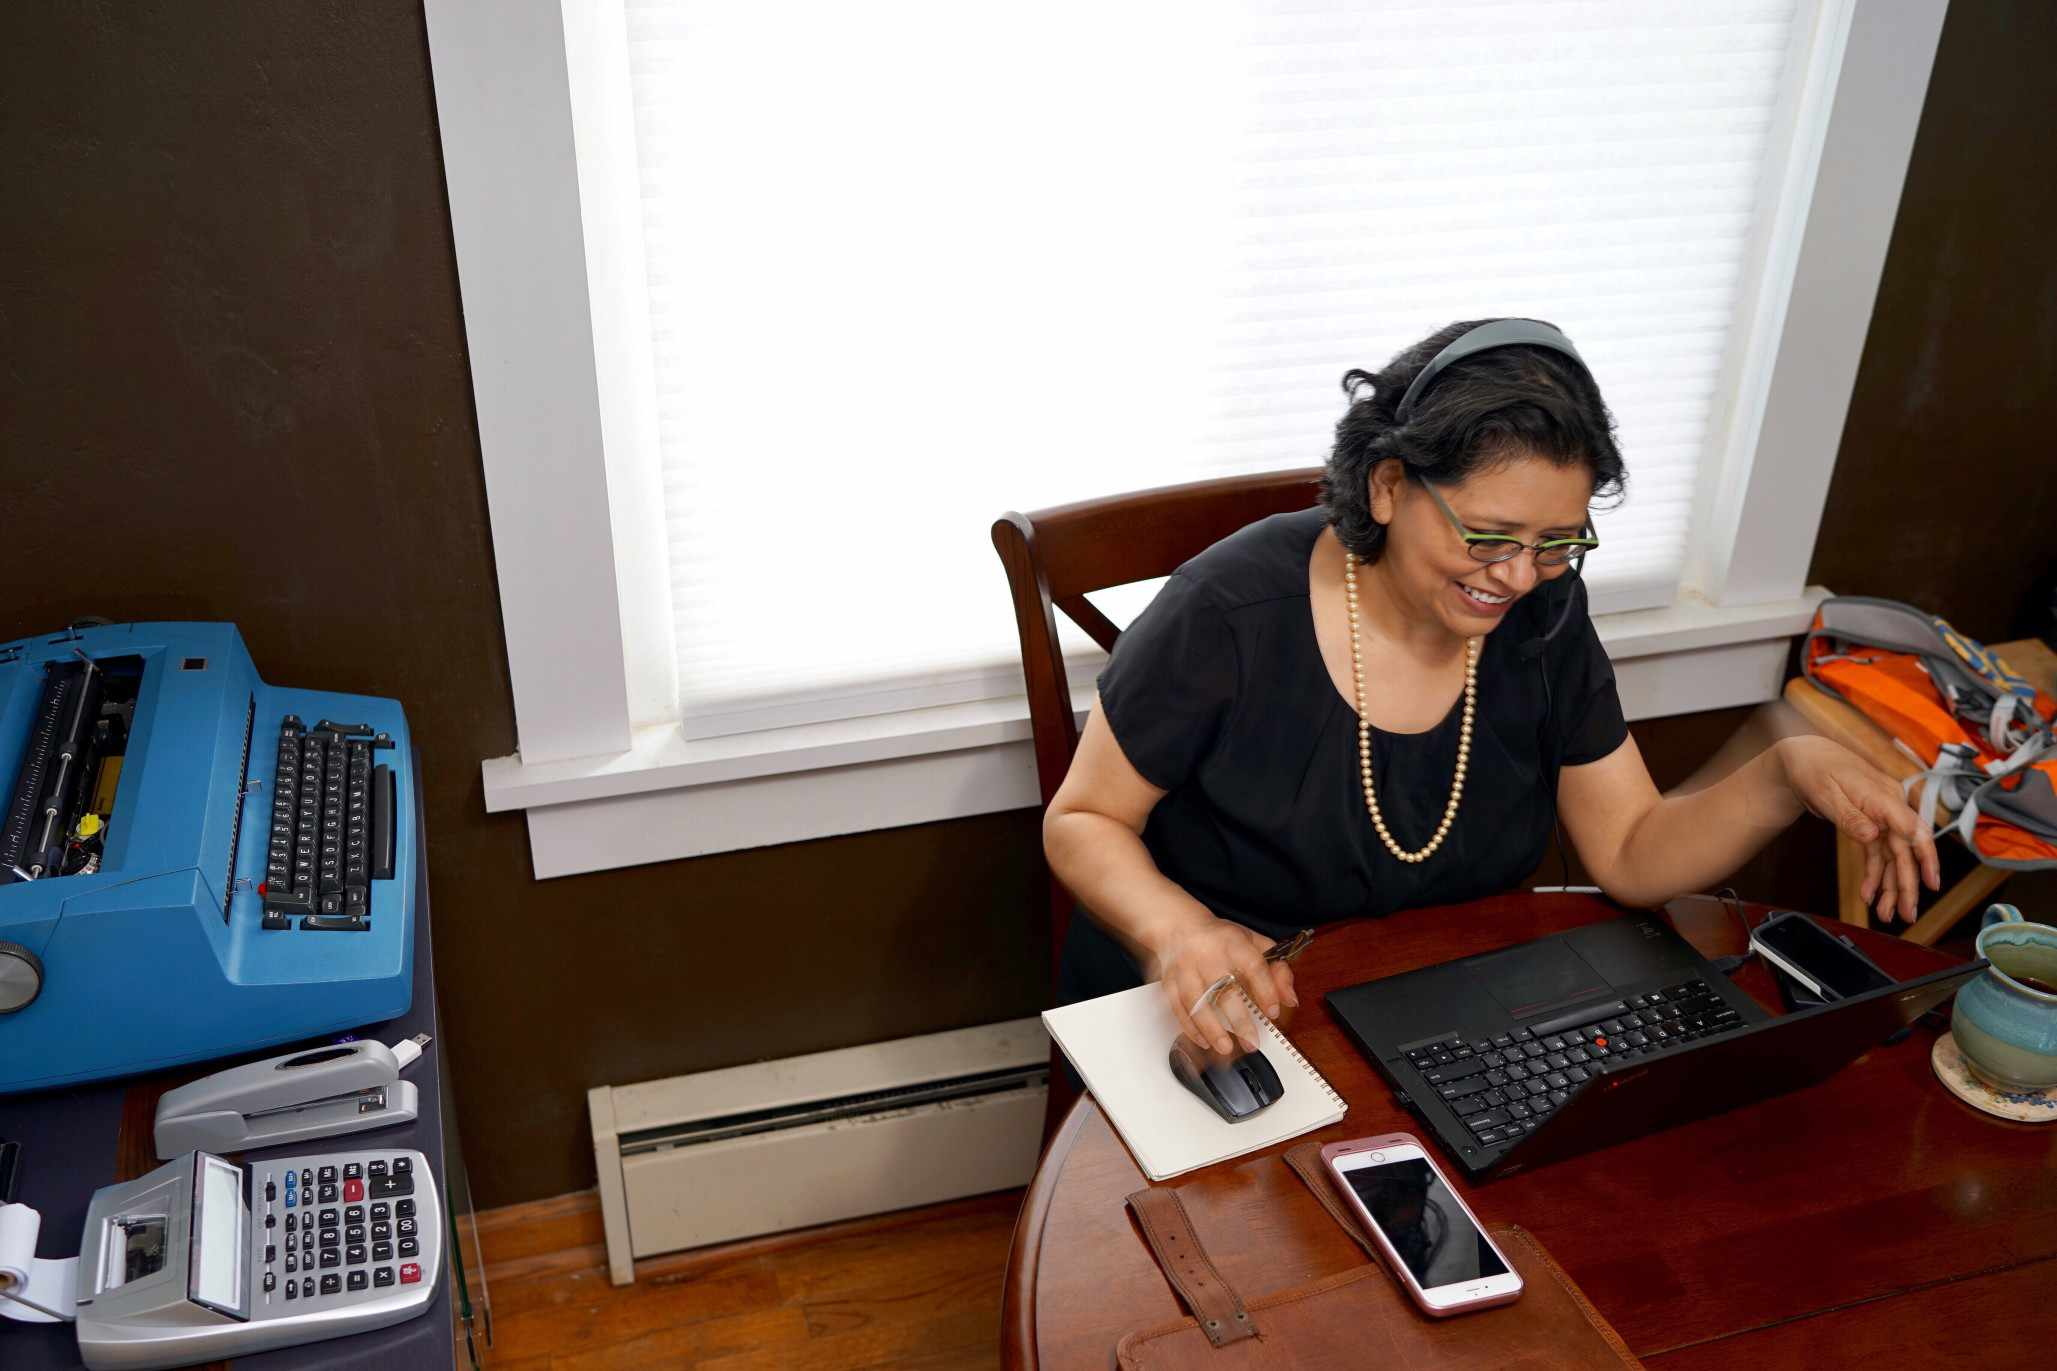 A woman participating on a video conference at the kitchen table.